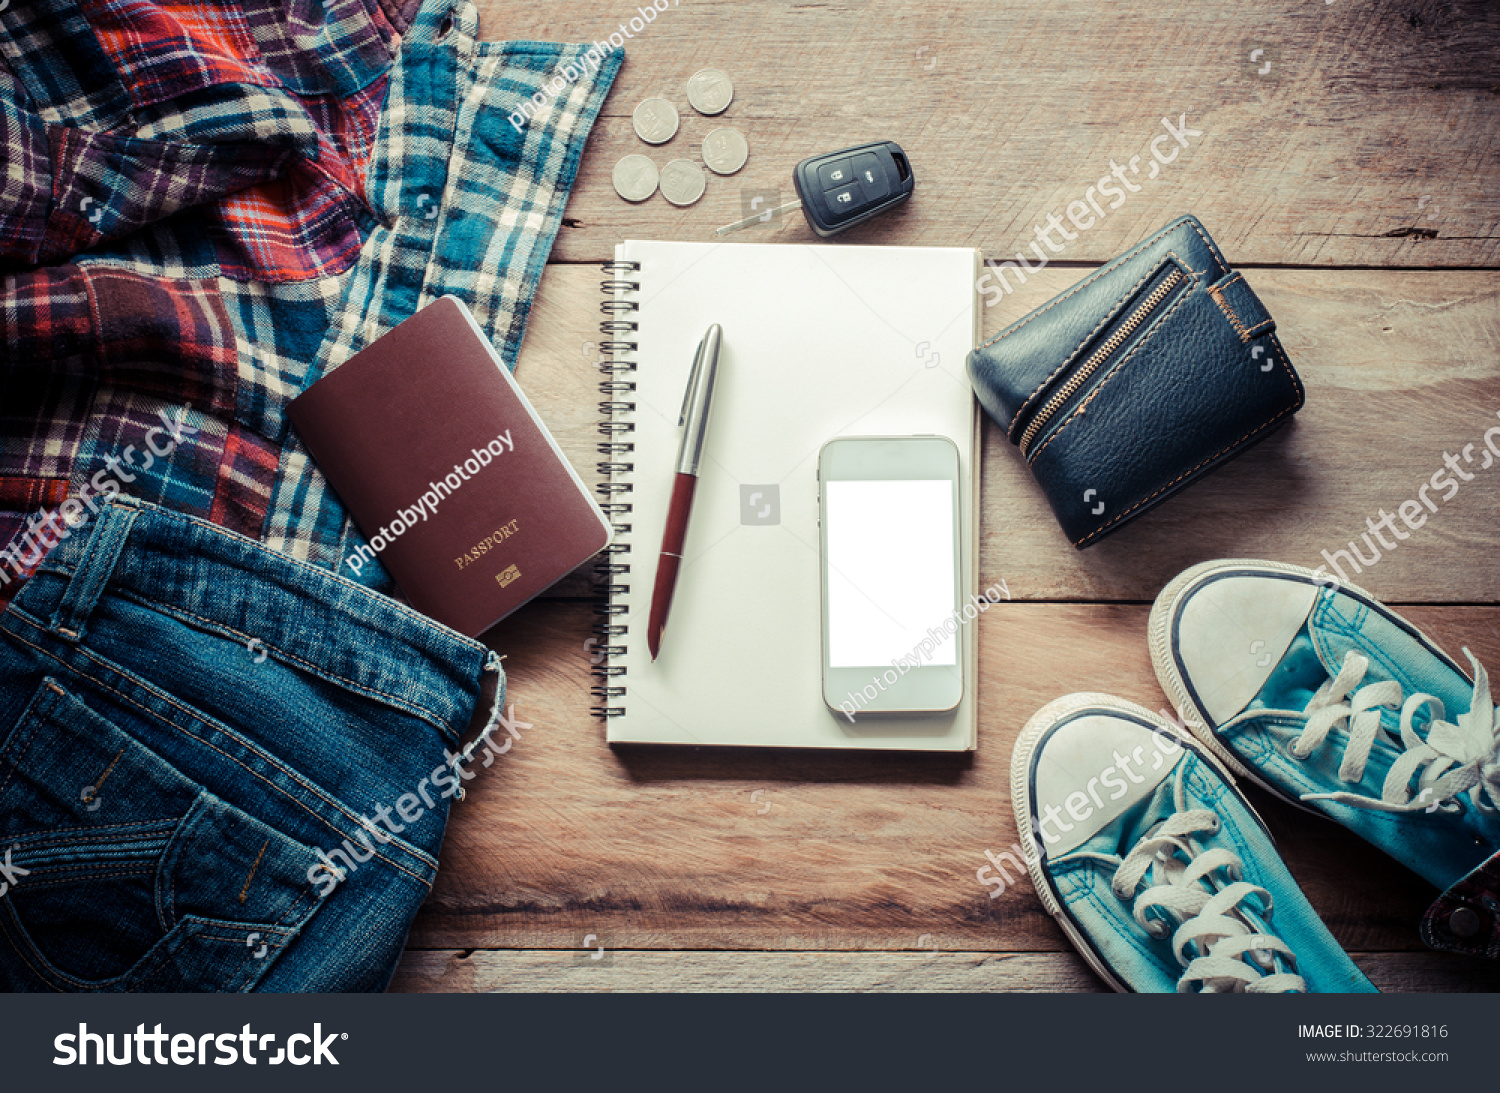 Travel accessories shirts jeans shoes passports stock photo 322691816 shutterstock for Travel gear car